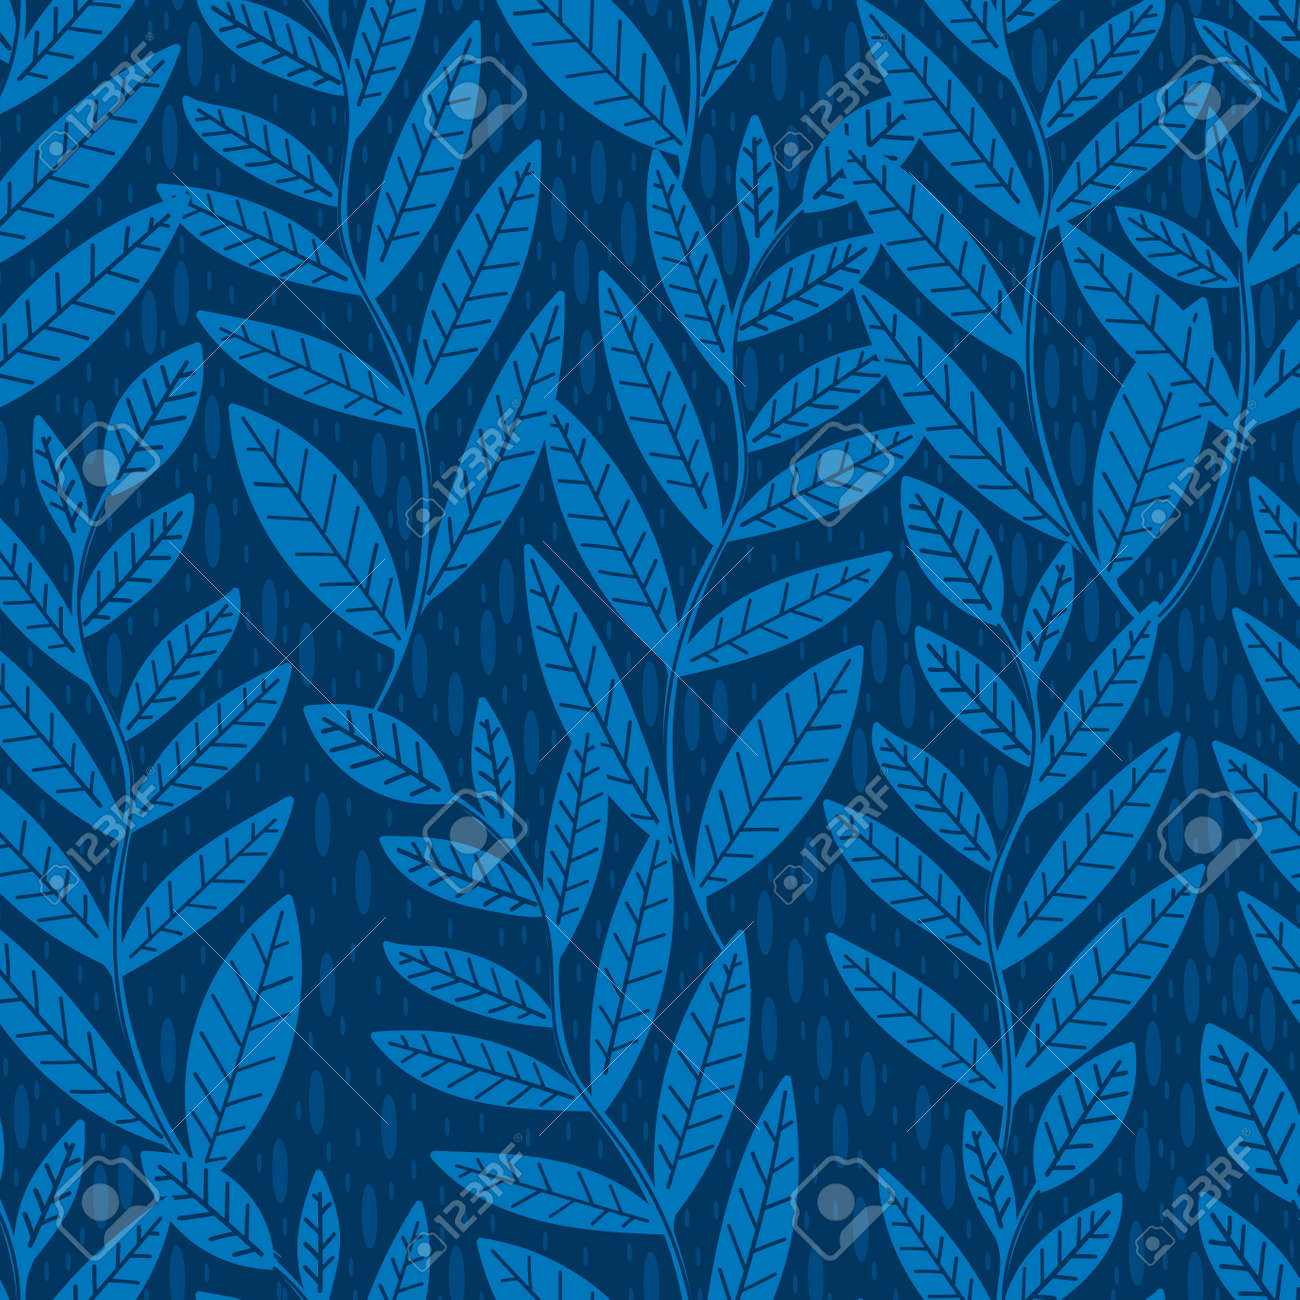 Seamless pattern leaves plant .Floral motif nature abstract print.Modern summer background. - 170424791